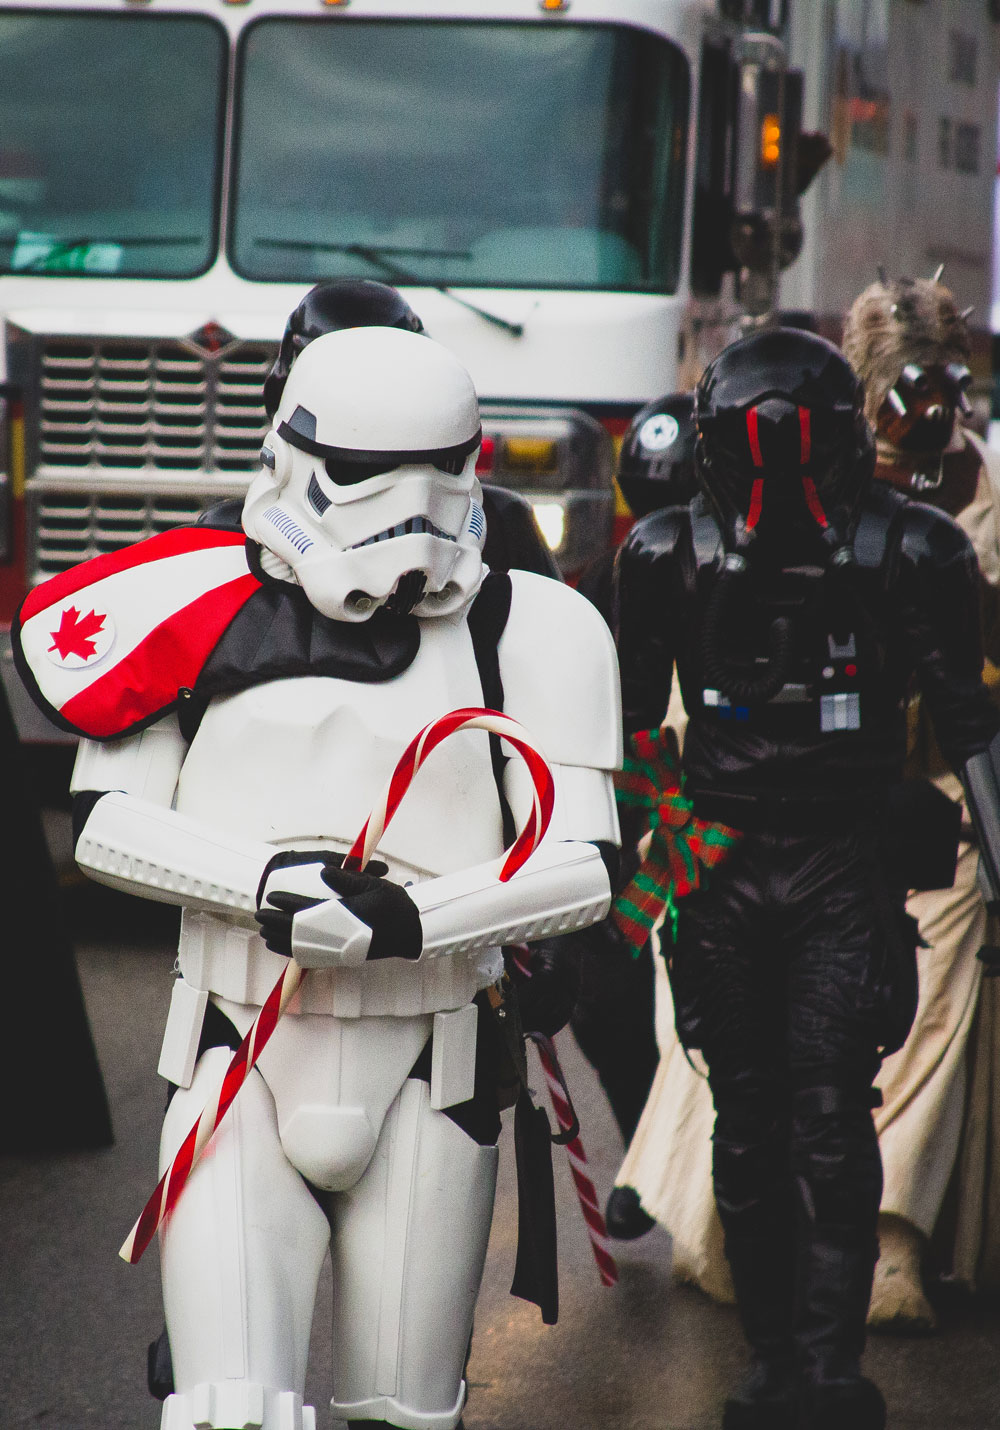 Stormtrooper, Santa Clause, Parade, Christmas